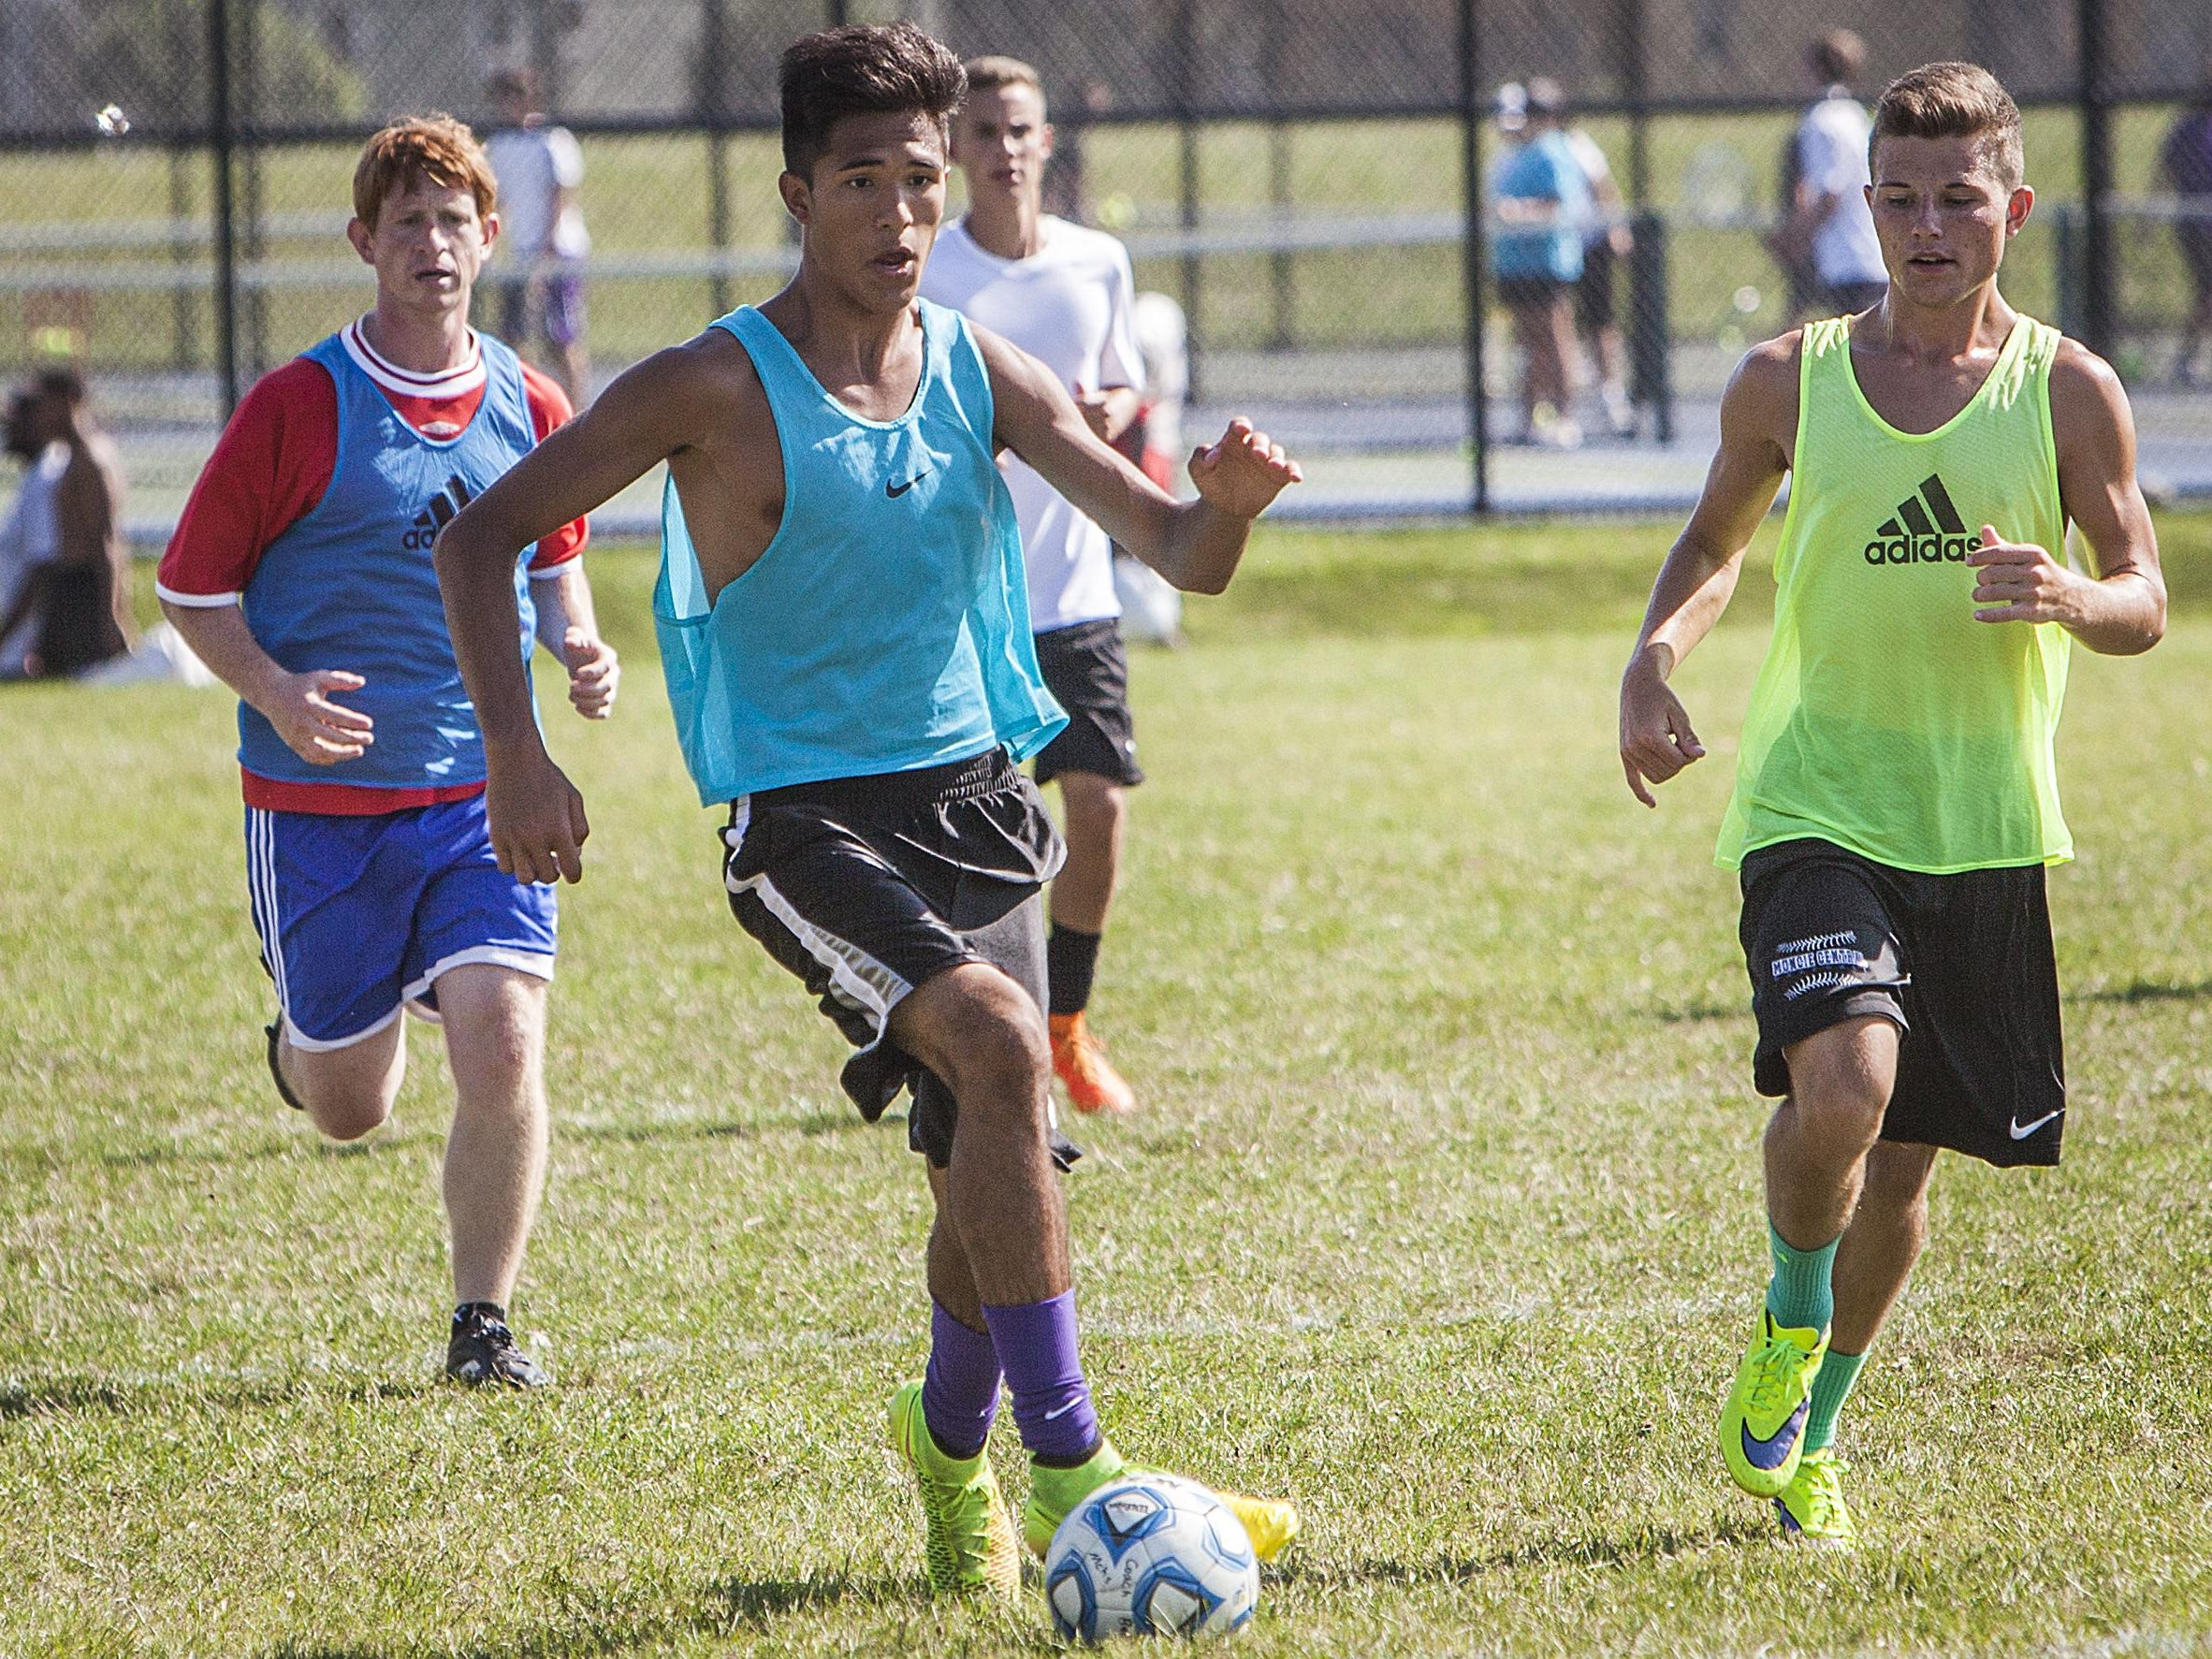 Central's Chase Clasby dribbles the ball in practice.